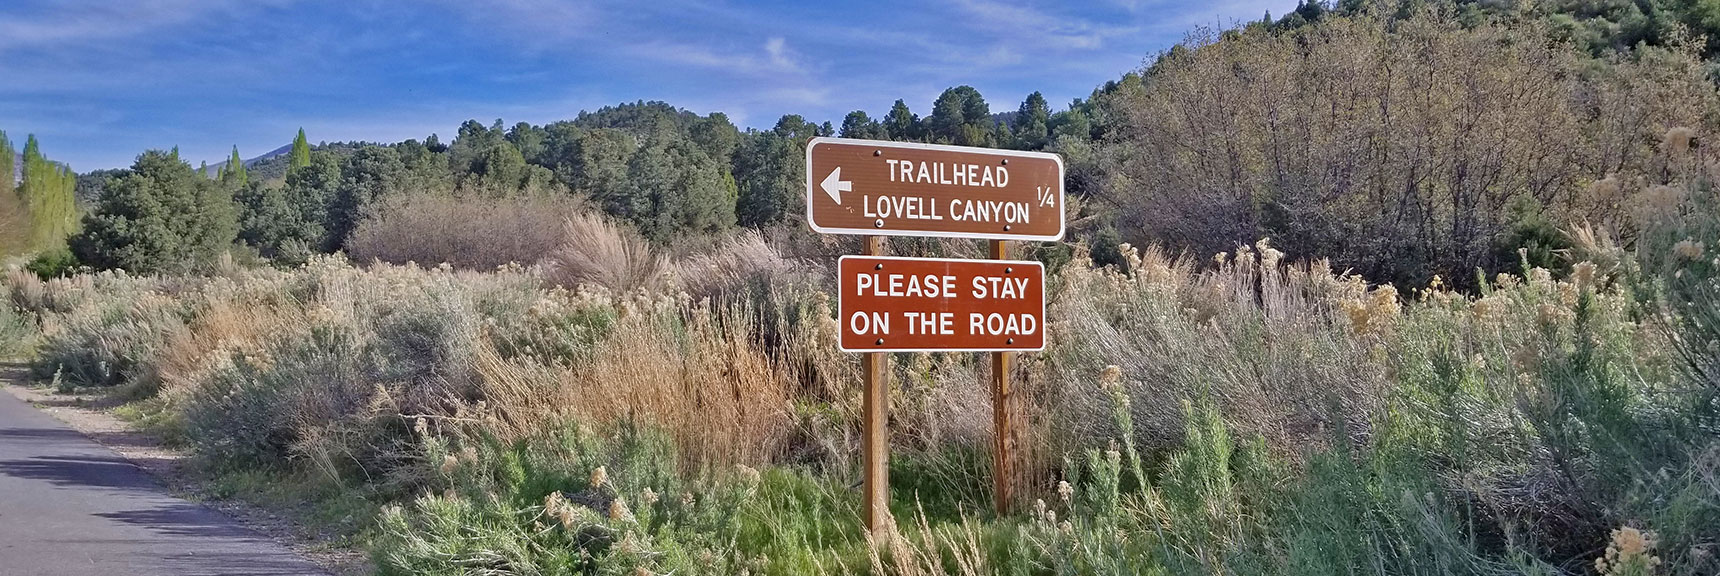 End of 12-mile Paved Road, Lovell Canyon Trail, La Madre Mountains Wilderness, Nevada